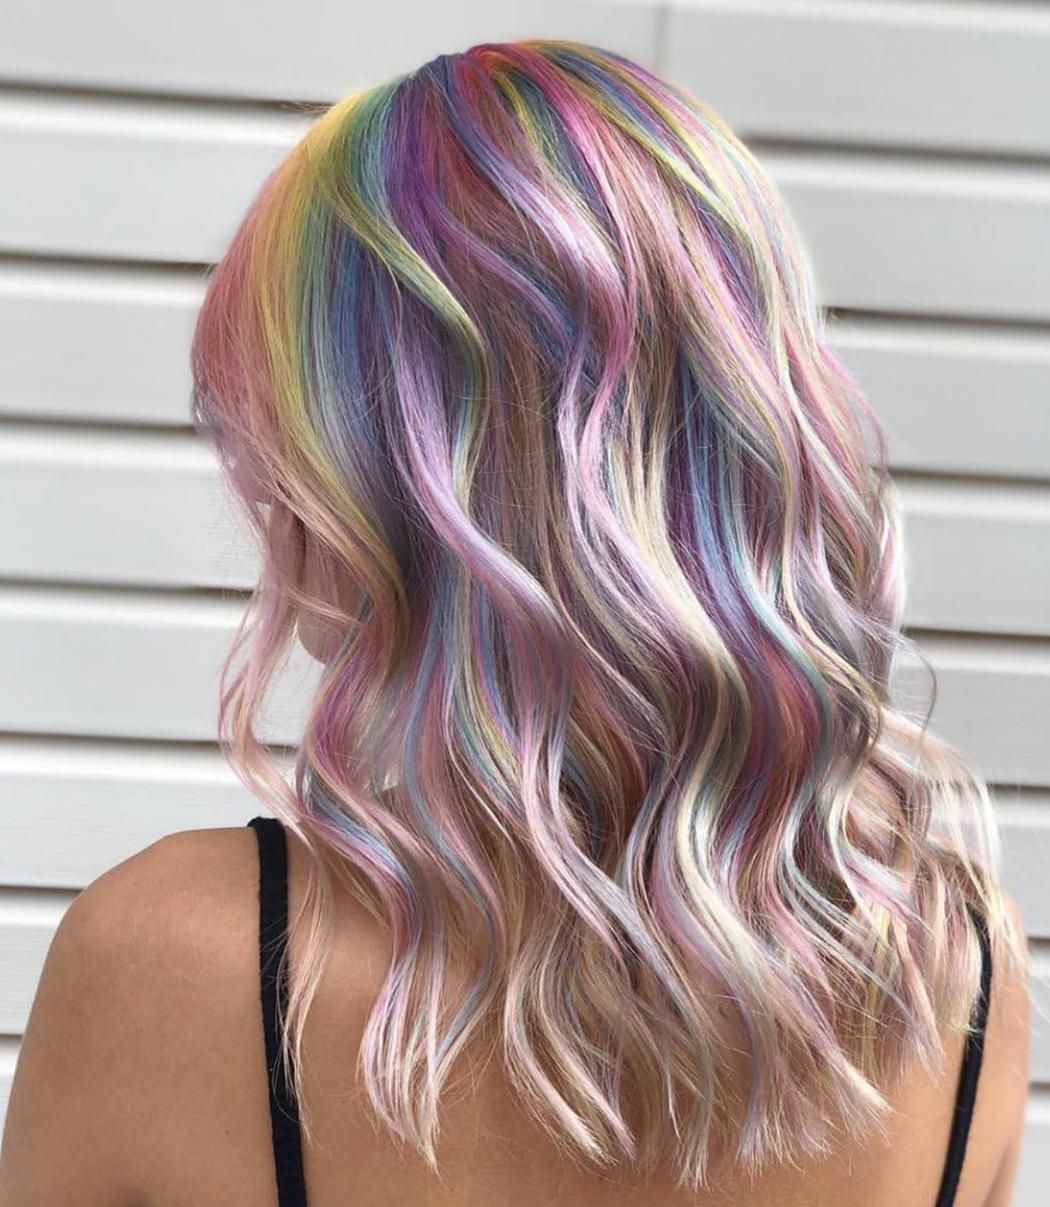 60 Classy Colors Ideas For Women Hairstyle Edgy Hair Color For Brunettes Edgy Hair Color 2020 Long Hair Ideas Ombre Ins Hair Styles Holographic Hair Hair Color